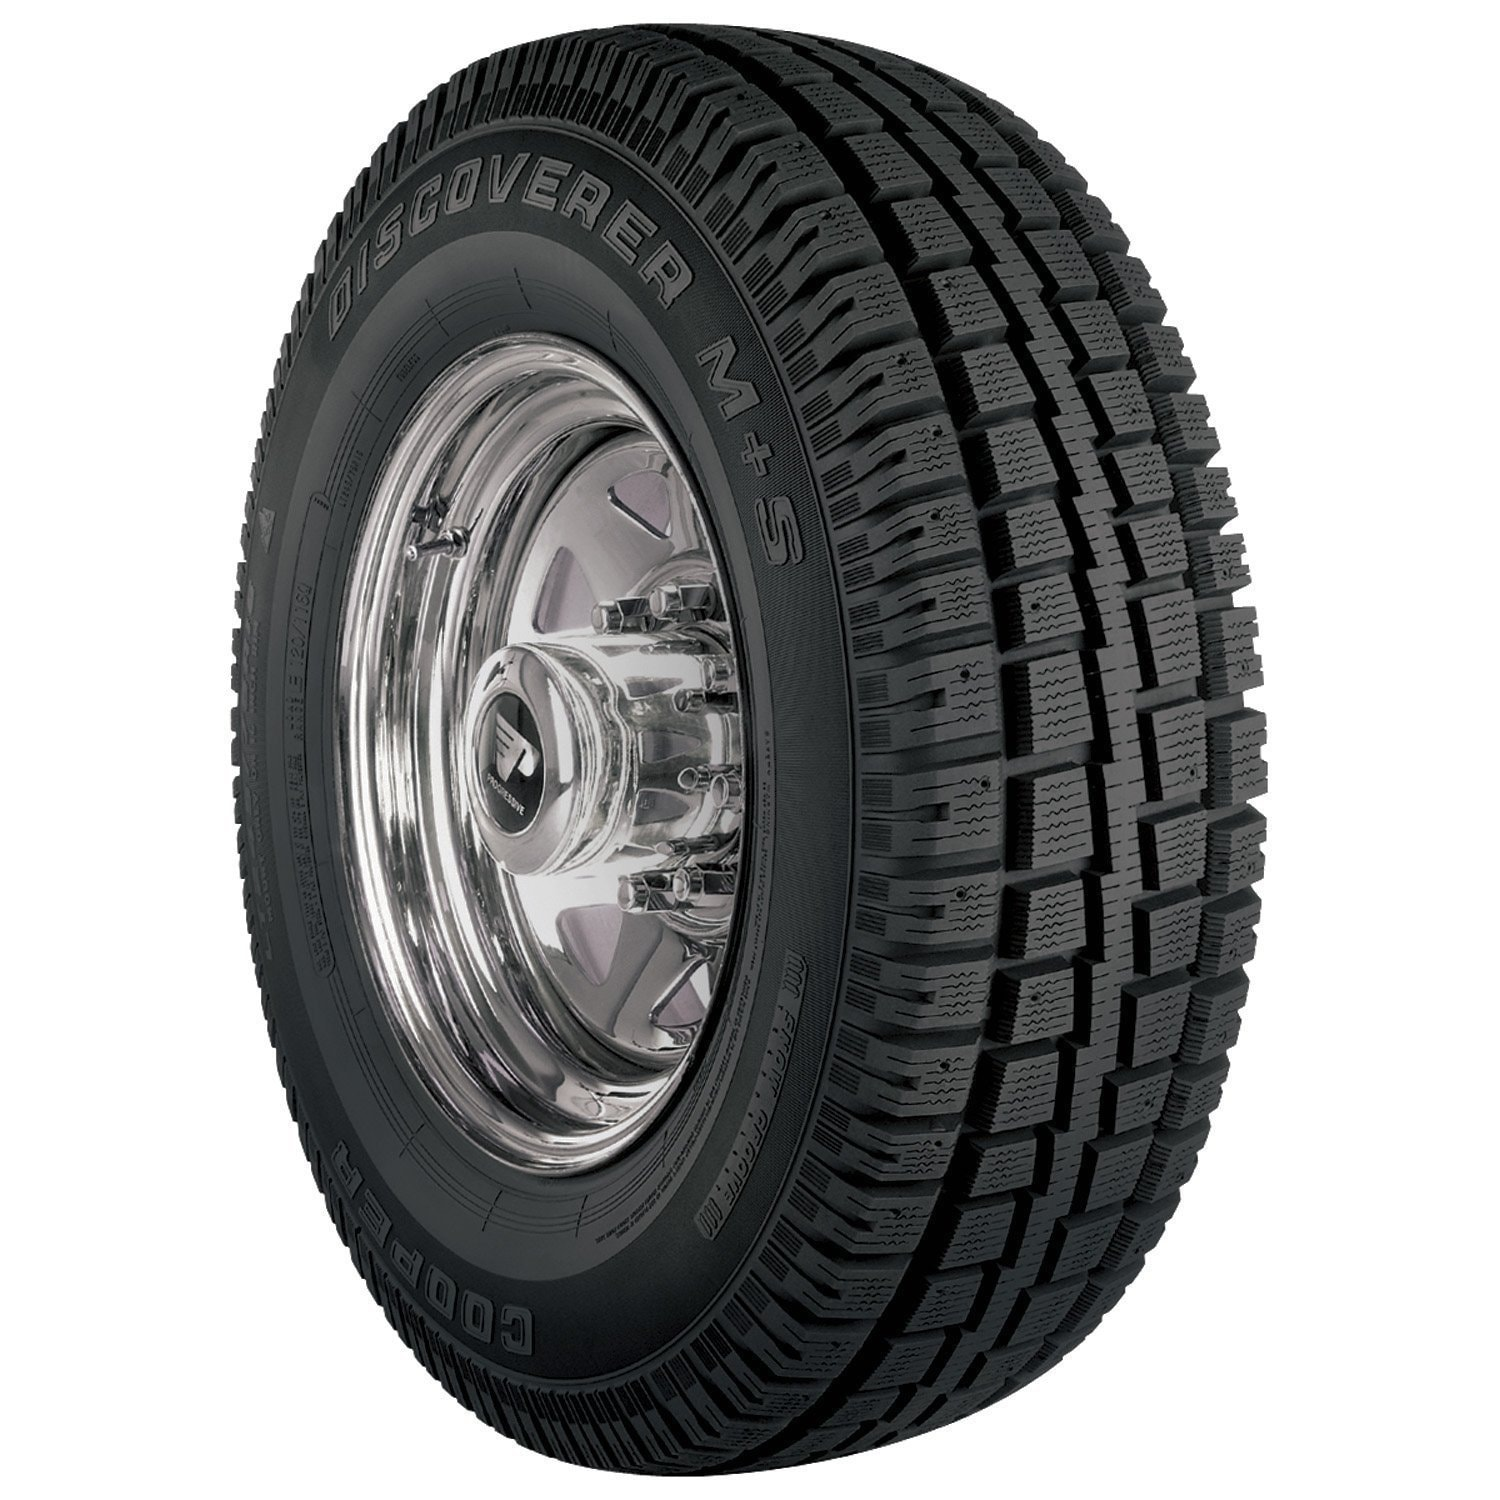 COOPER Discoverer M+S Winter Tire - LT235/80R17 LRE/10 pl...